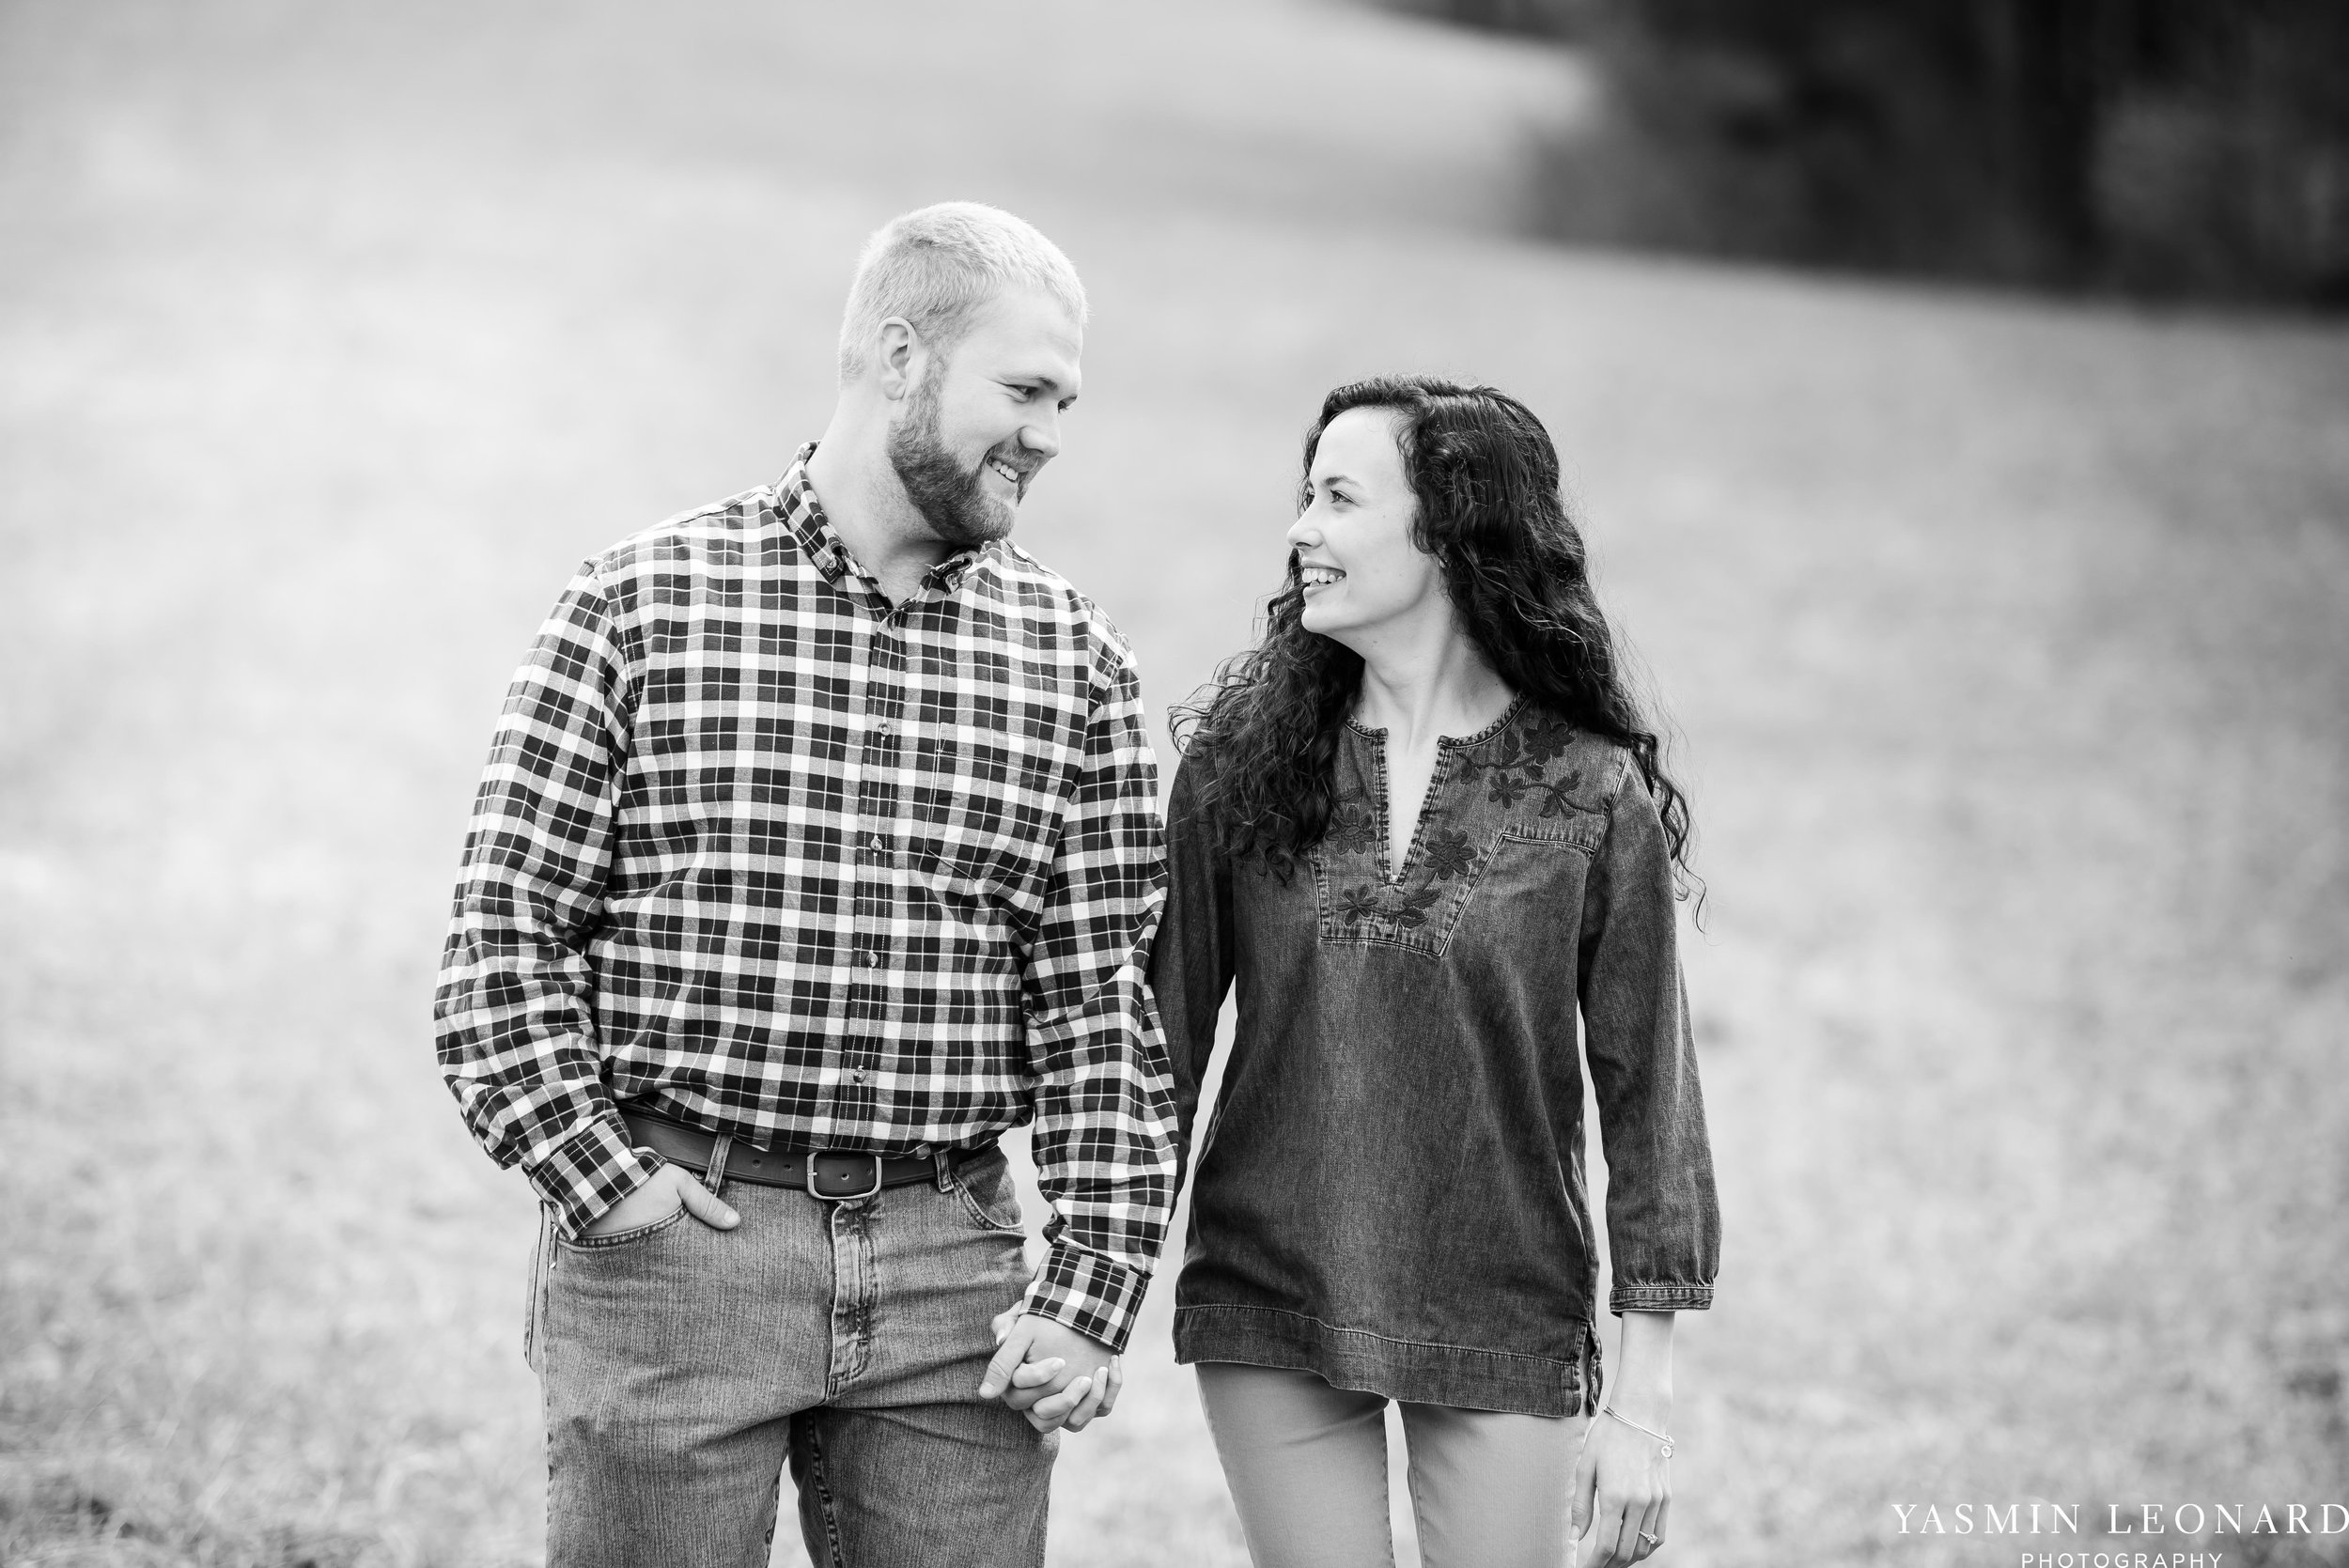 Wallburg Engagement Session - Country Engagement Session - High Point Engagement Session - Outdoor Engagement Session - Engagement Photos - Barn Engagement Photos - NC Photographer - High Point Photographer-2.jpg